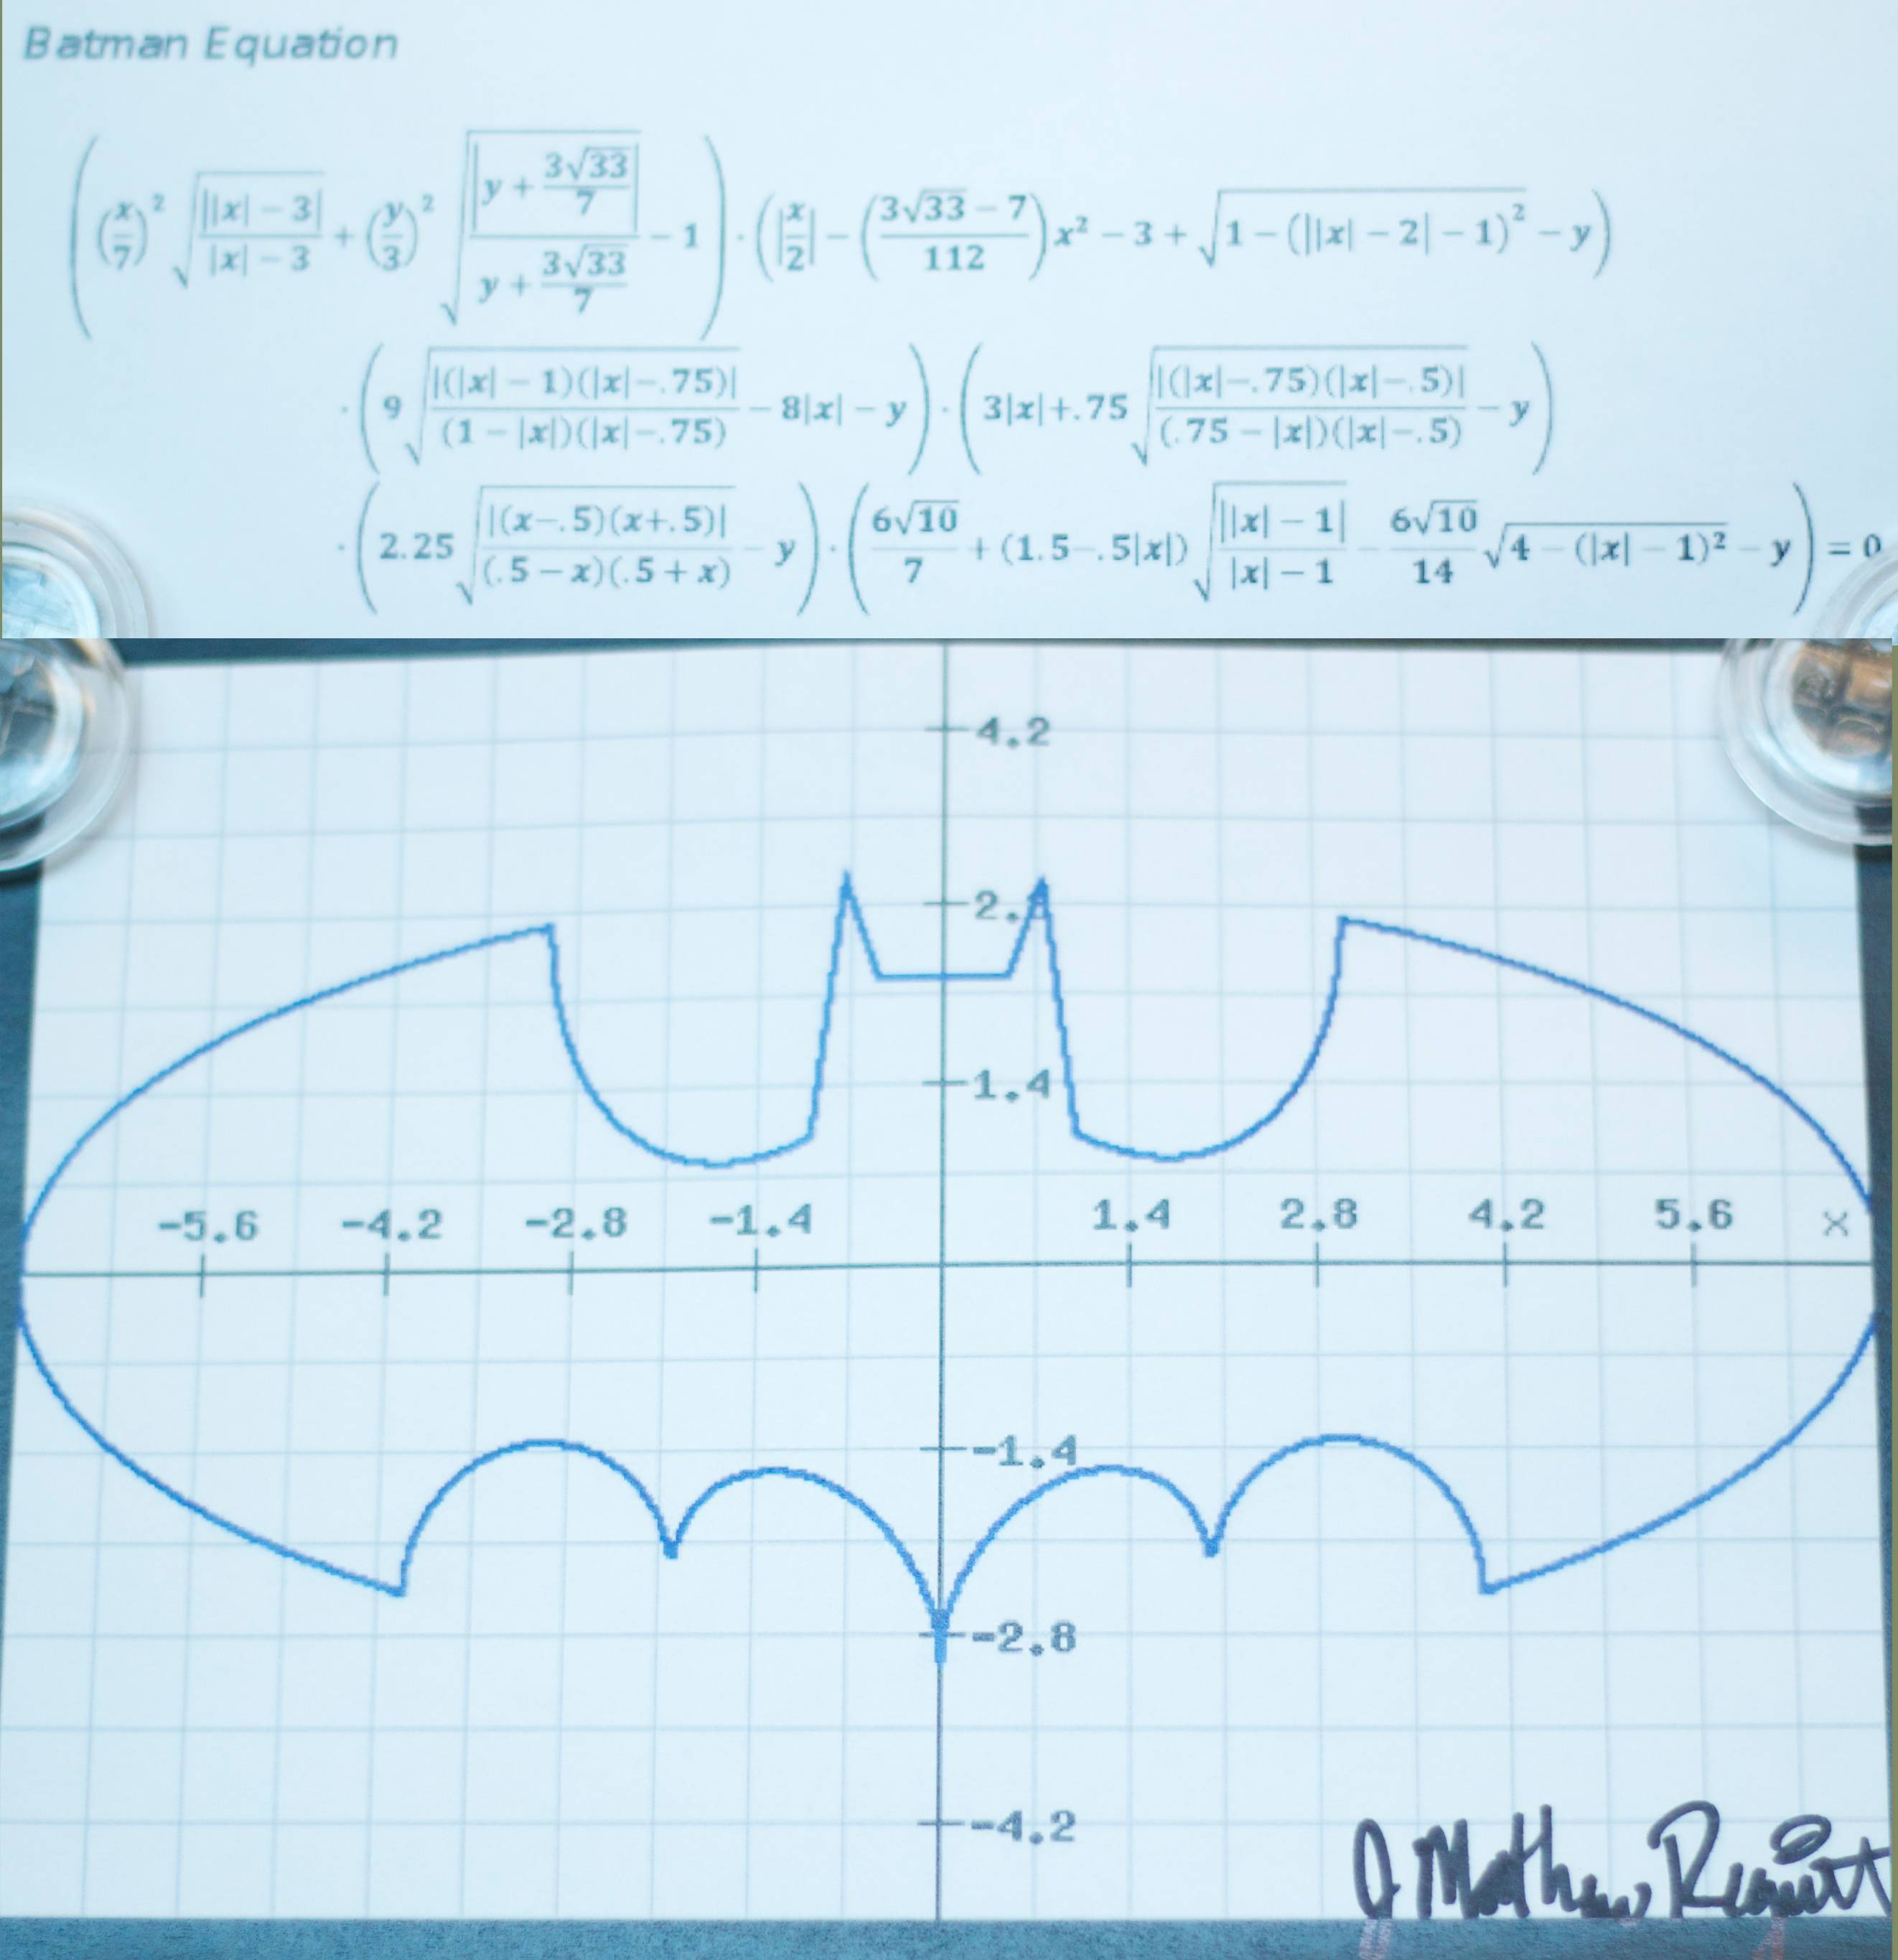 The Batman Equation